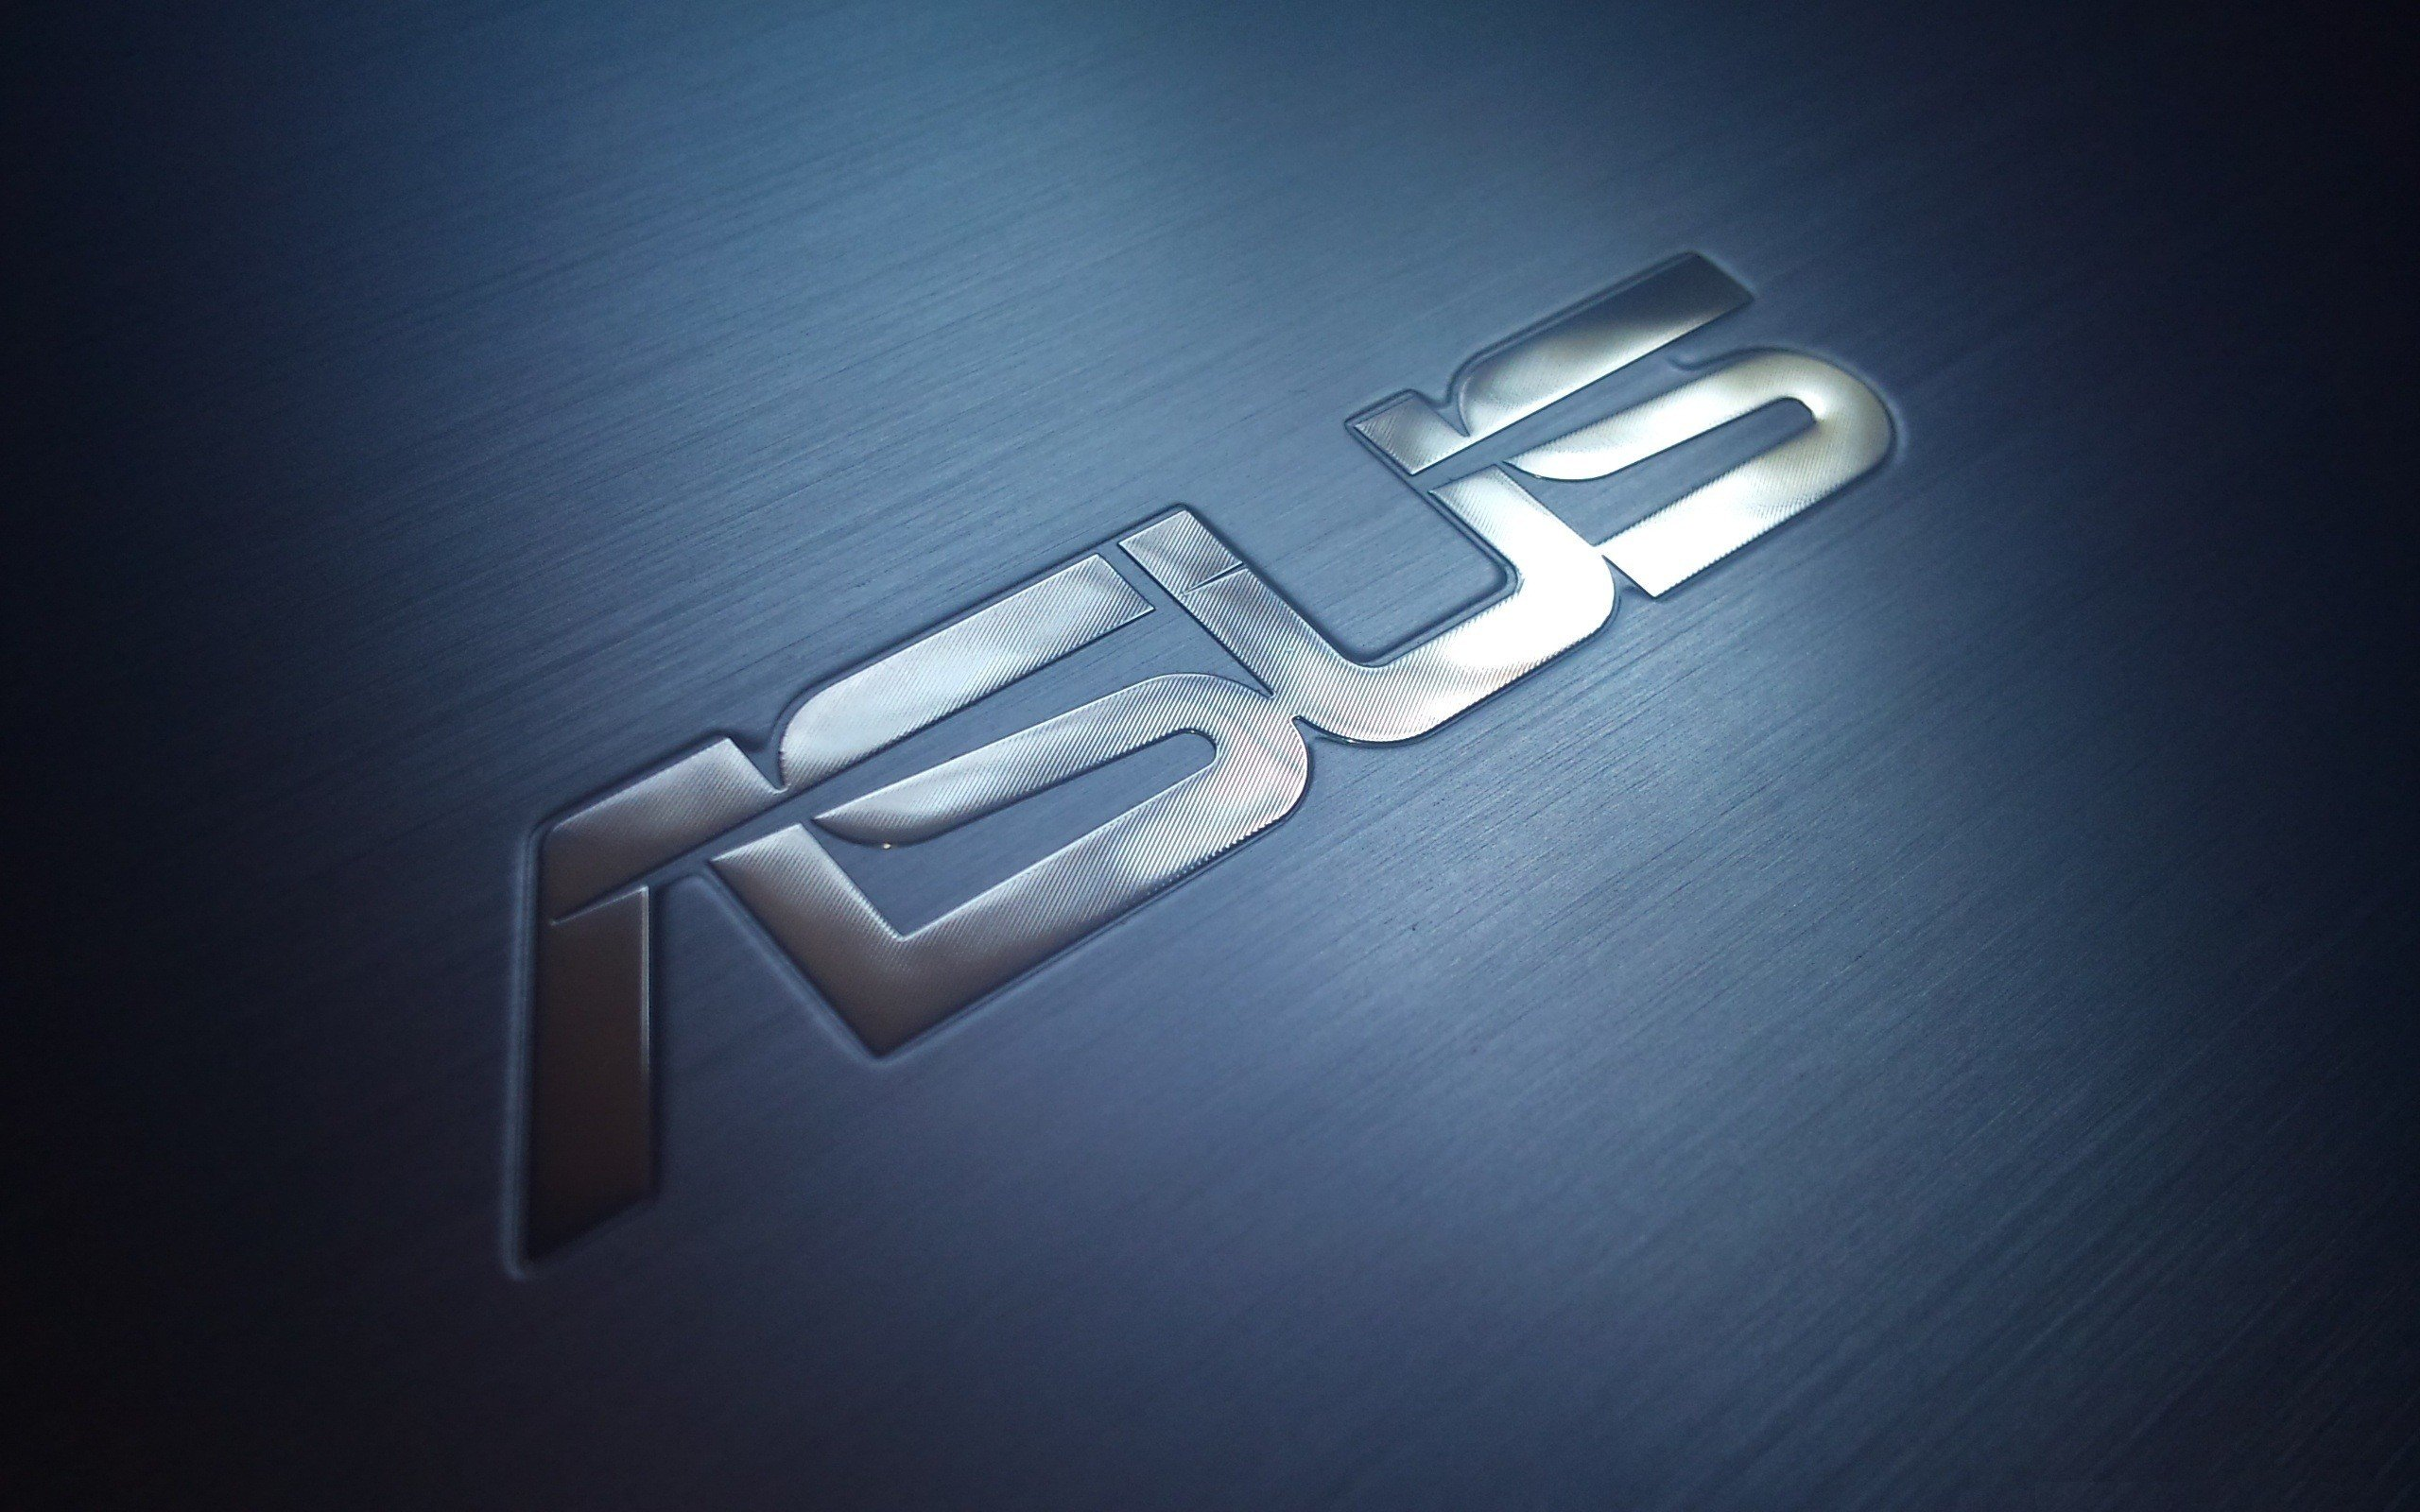 Asus Mobile Wallpaper: ASUS HD Wallpapers / Desktop And Mobile Images & Photos